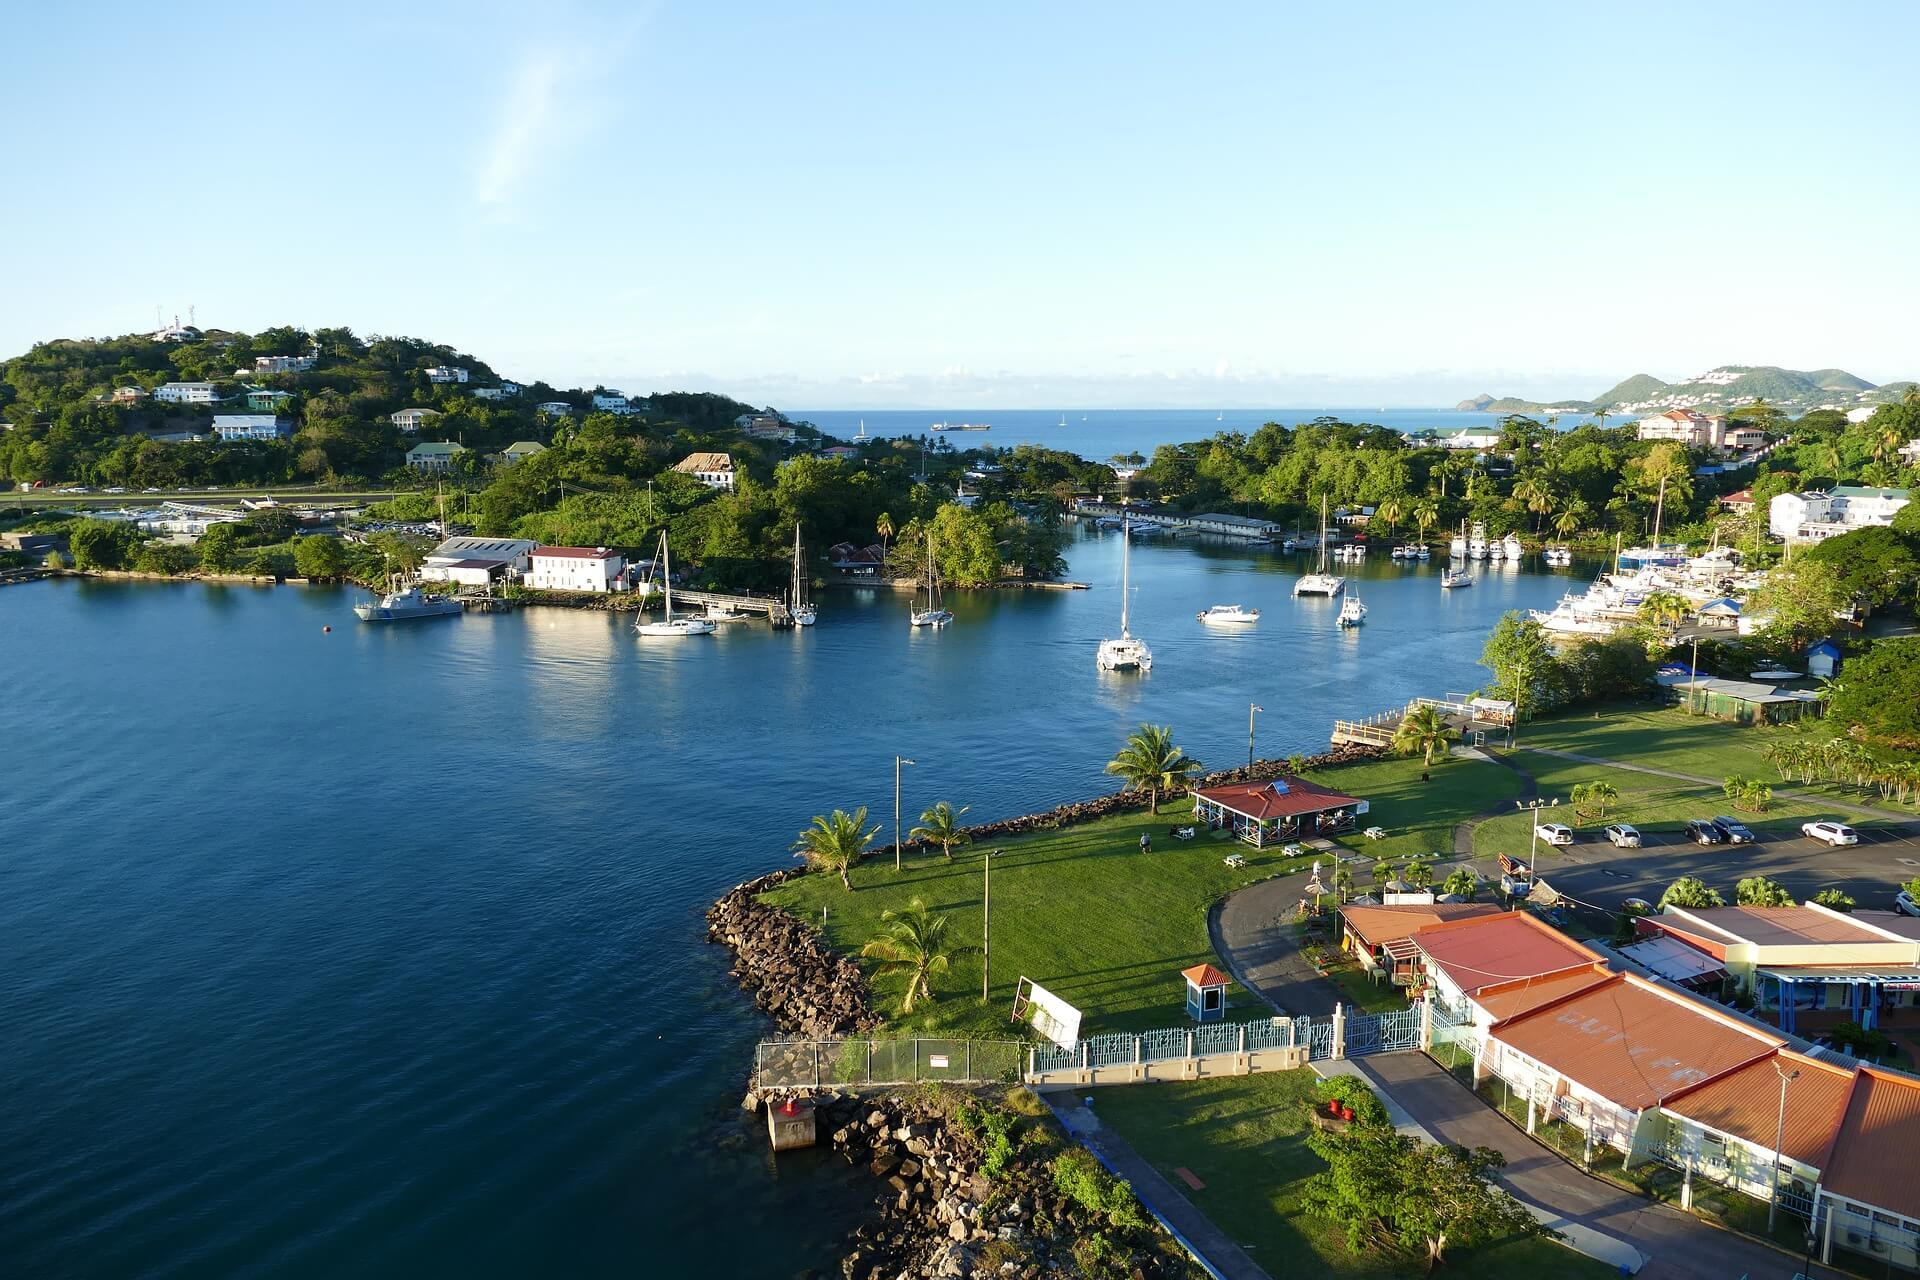 st-lucia-4911632_1920 (1)